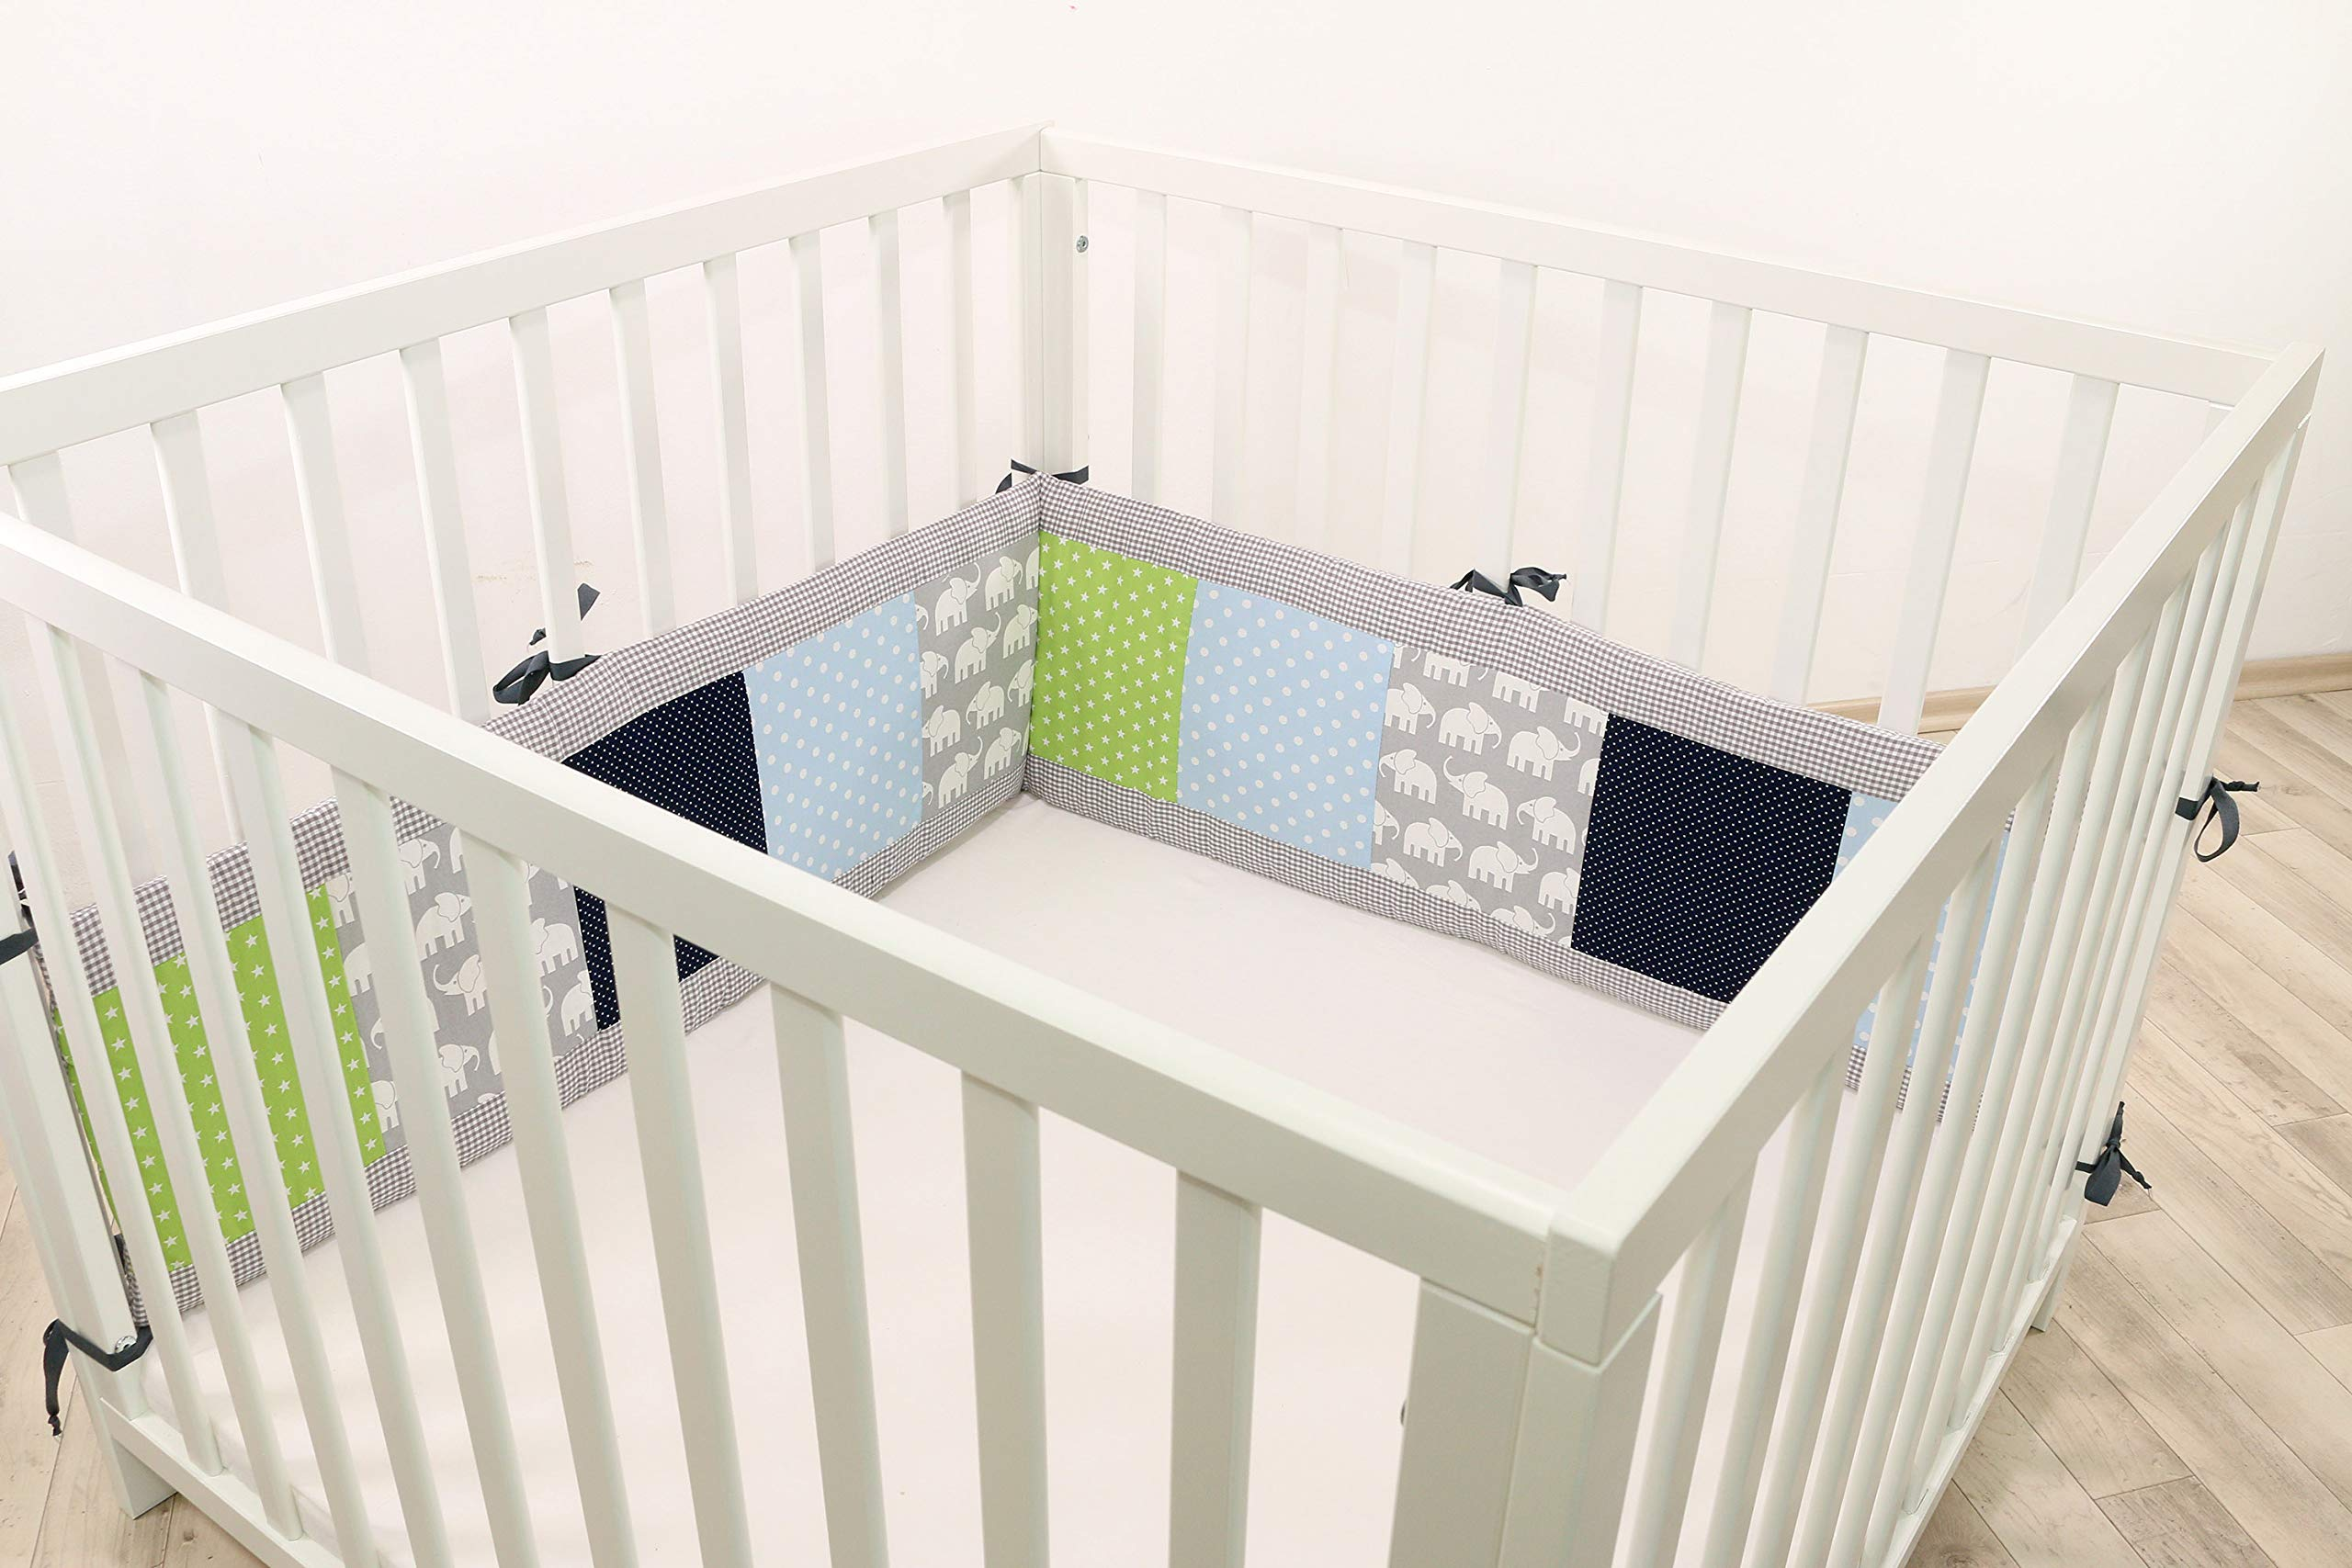 ULLENBOOM® Bumper- Blue Green Elephants (200x 30cm Baby playpen Bumper, 100x 100cm playpen Bumper Pads for The Head Area) ULLENBOOM This 200x 30cm patchwork bumper serves as a protective insert and surround for 100x 100cm playpens, to provide babies with protection- especially head protection- from playpen bars The sizes 200x 30cm and 400x 30cm (full surround) are for playpens- the 'full surround' bumper comes in two sections. ULLENBOOM also offers additional sizes for 140x 70cm and 120x 60cm cots These bumpers can be washed at 30 °C and the materials used are certified according to the Oeko-Tex standard (tested for harmful substances, hypoallergenic); smooth outer fabric: 100% cotton (Oeko-Tex); soft, thick wadding: 100% polyester (Oeko-Tex) 1